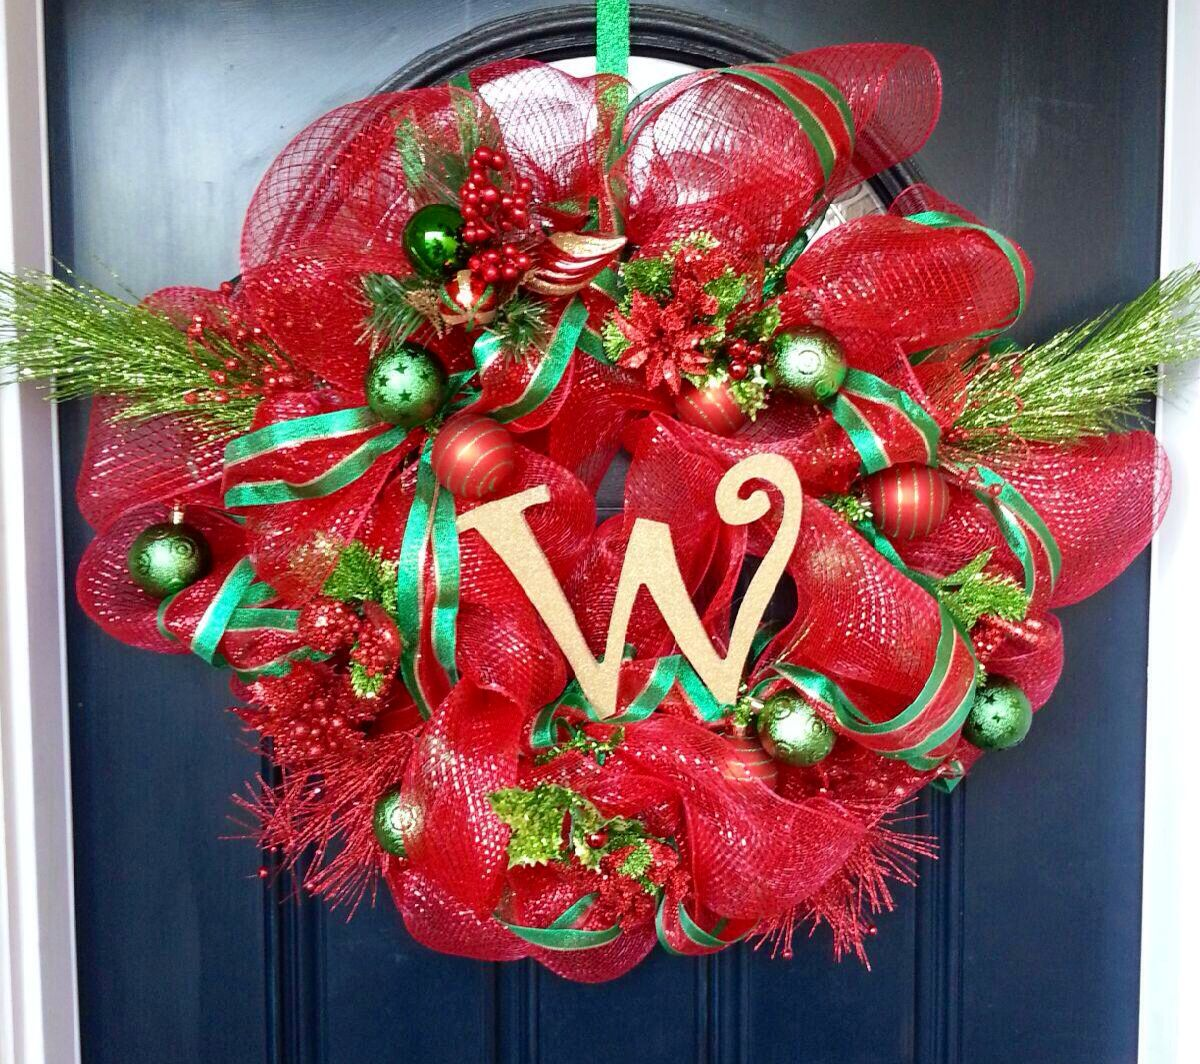 The wreath I made for my parents